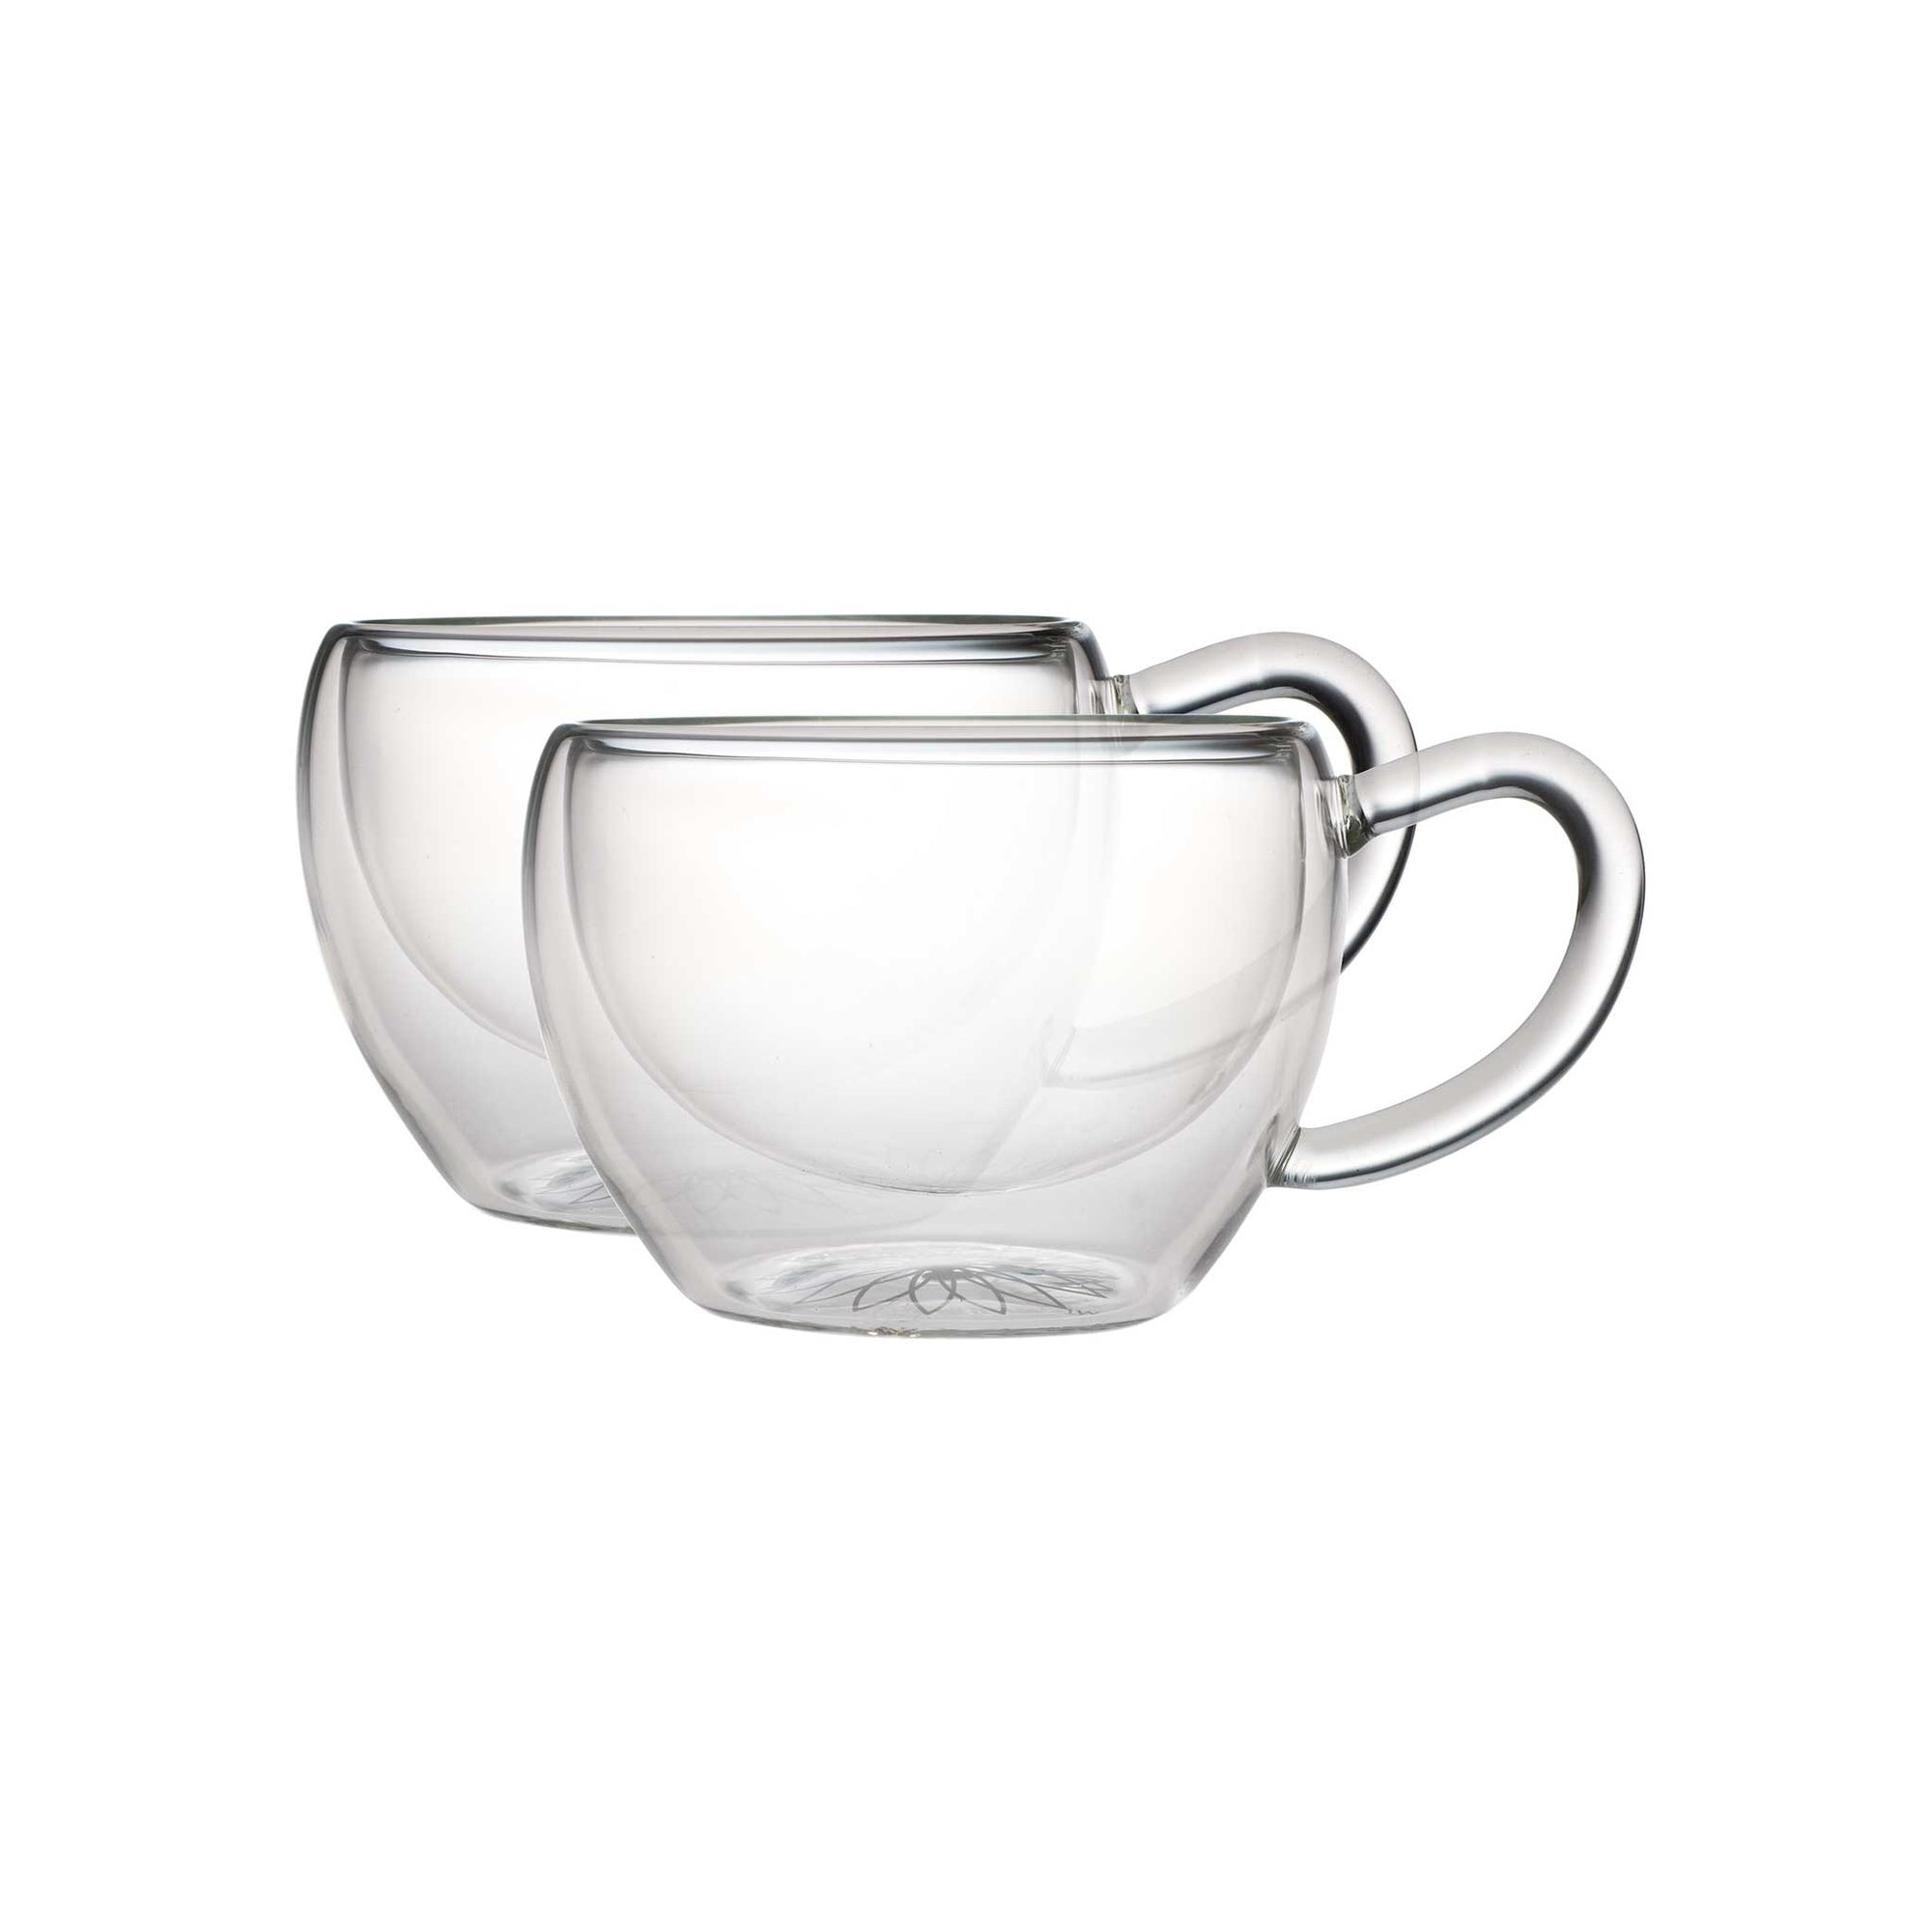 Teaposy socrates double-walled glass tea cups, set of two